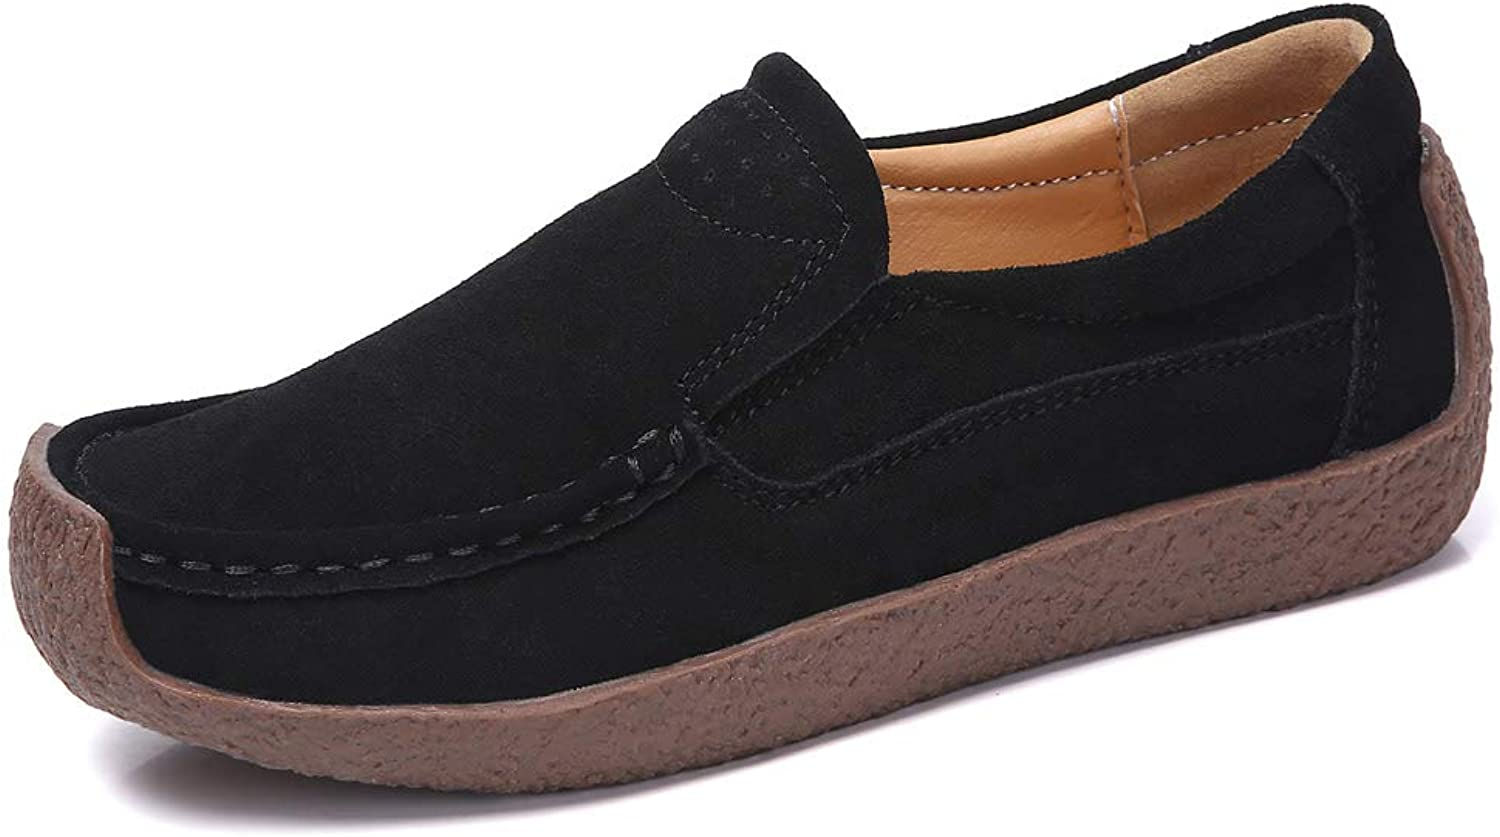 YKH Womens Slip On Suede Loafer Flats Casual Driving Moccasins Comfortable Work shoes